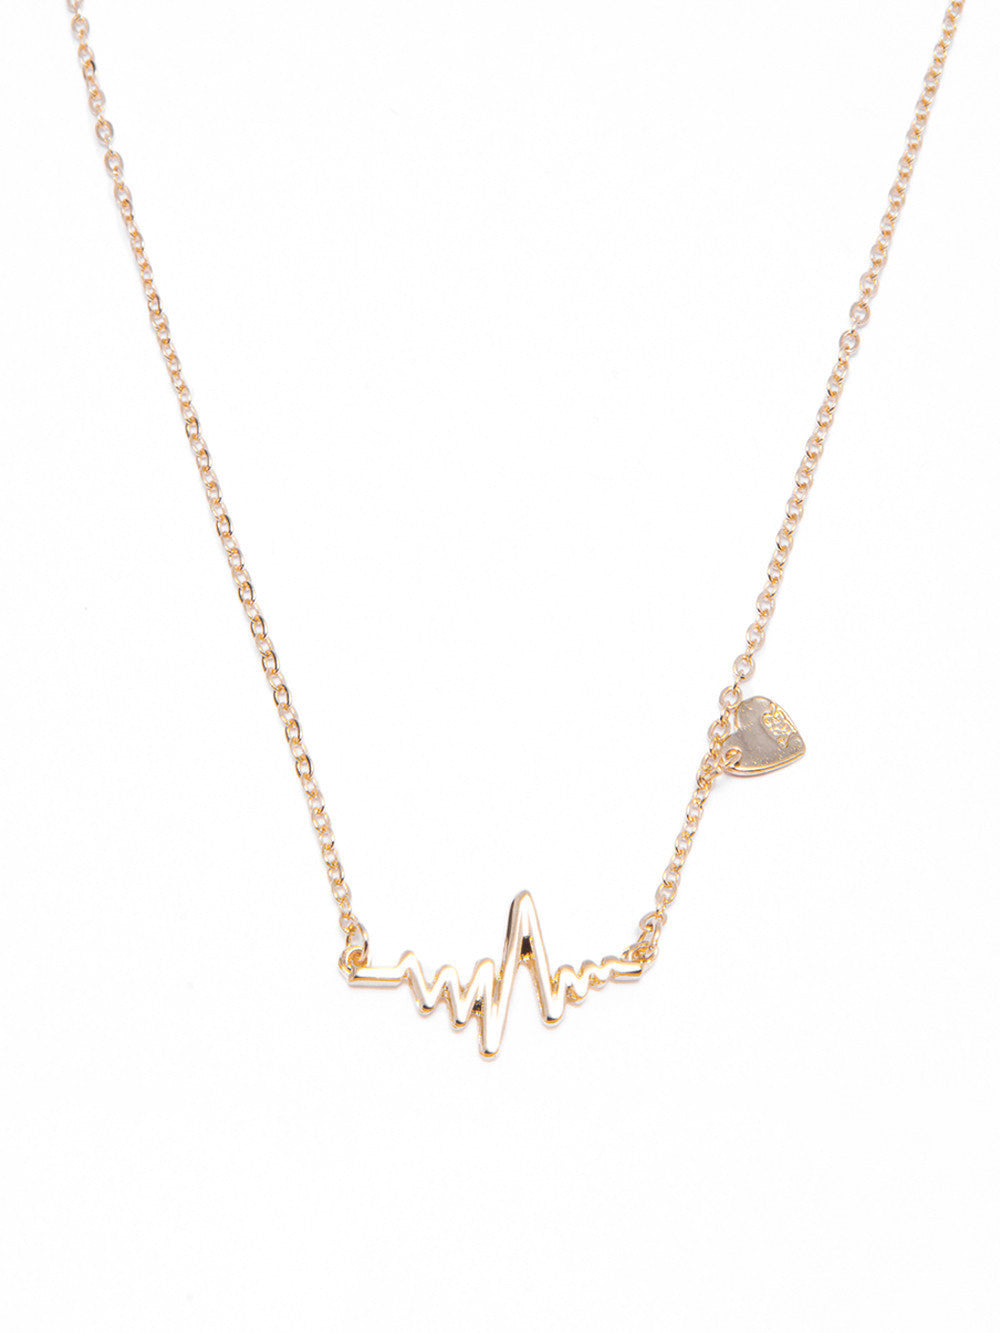 Reckless Girls Womens - Jewelry - Necklace Gold Pulse Necklace